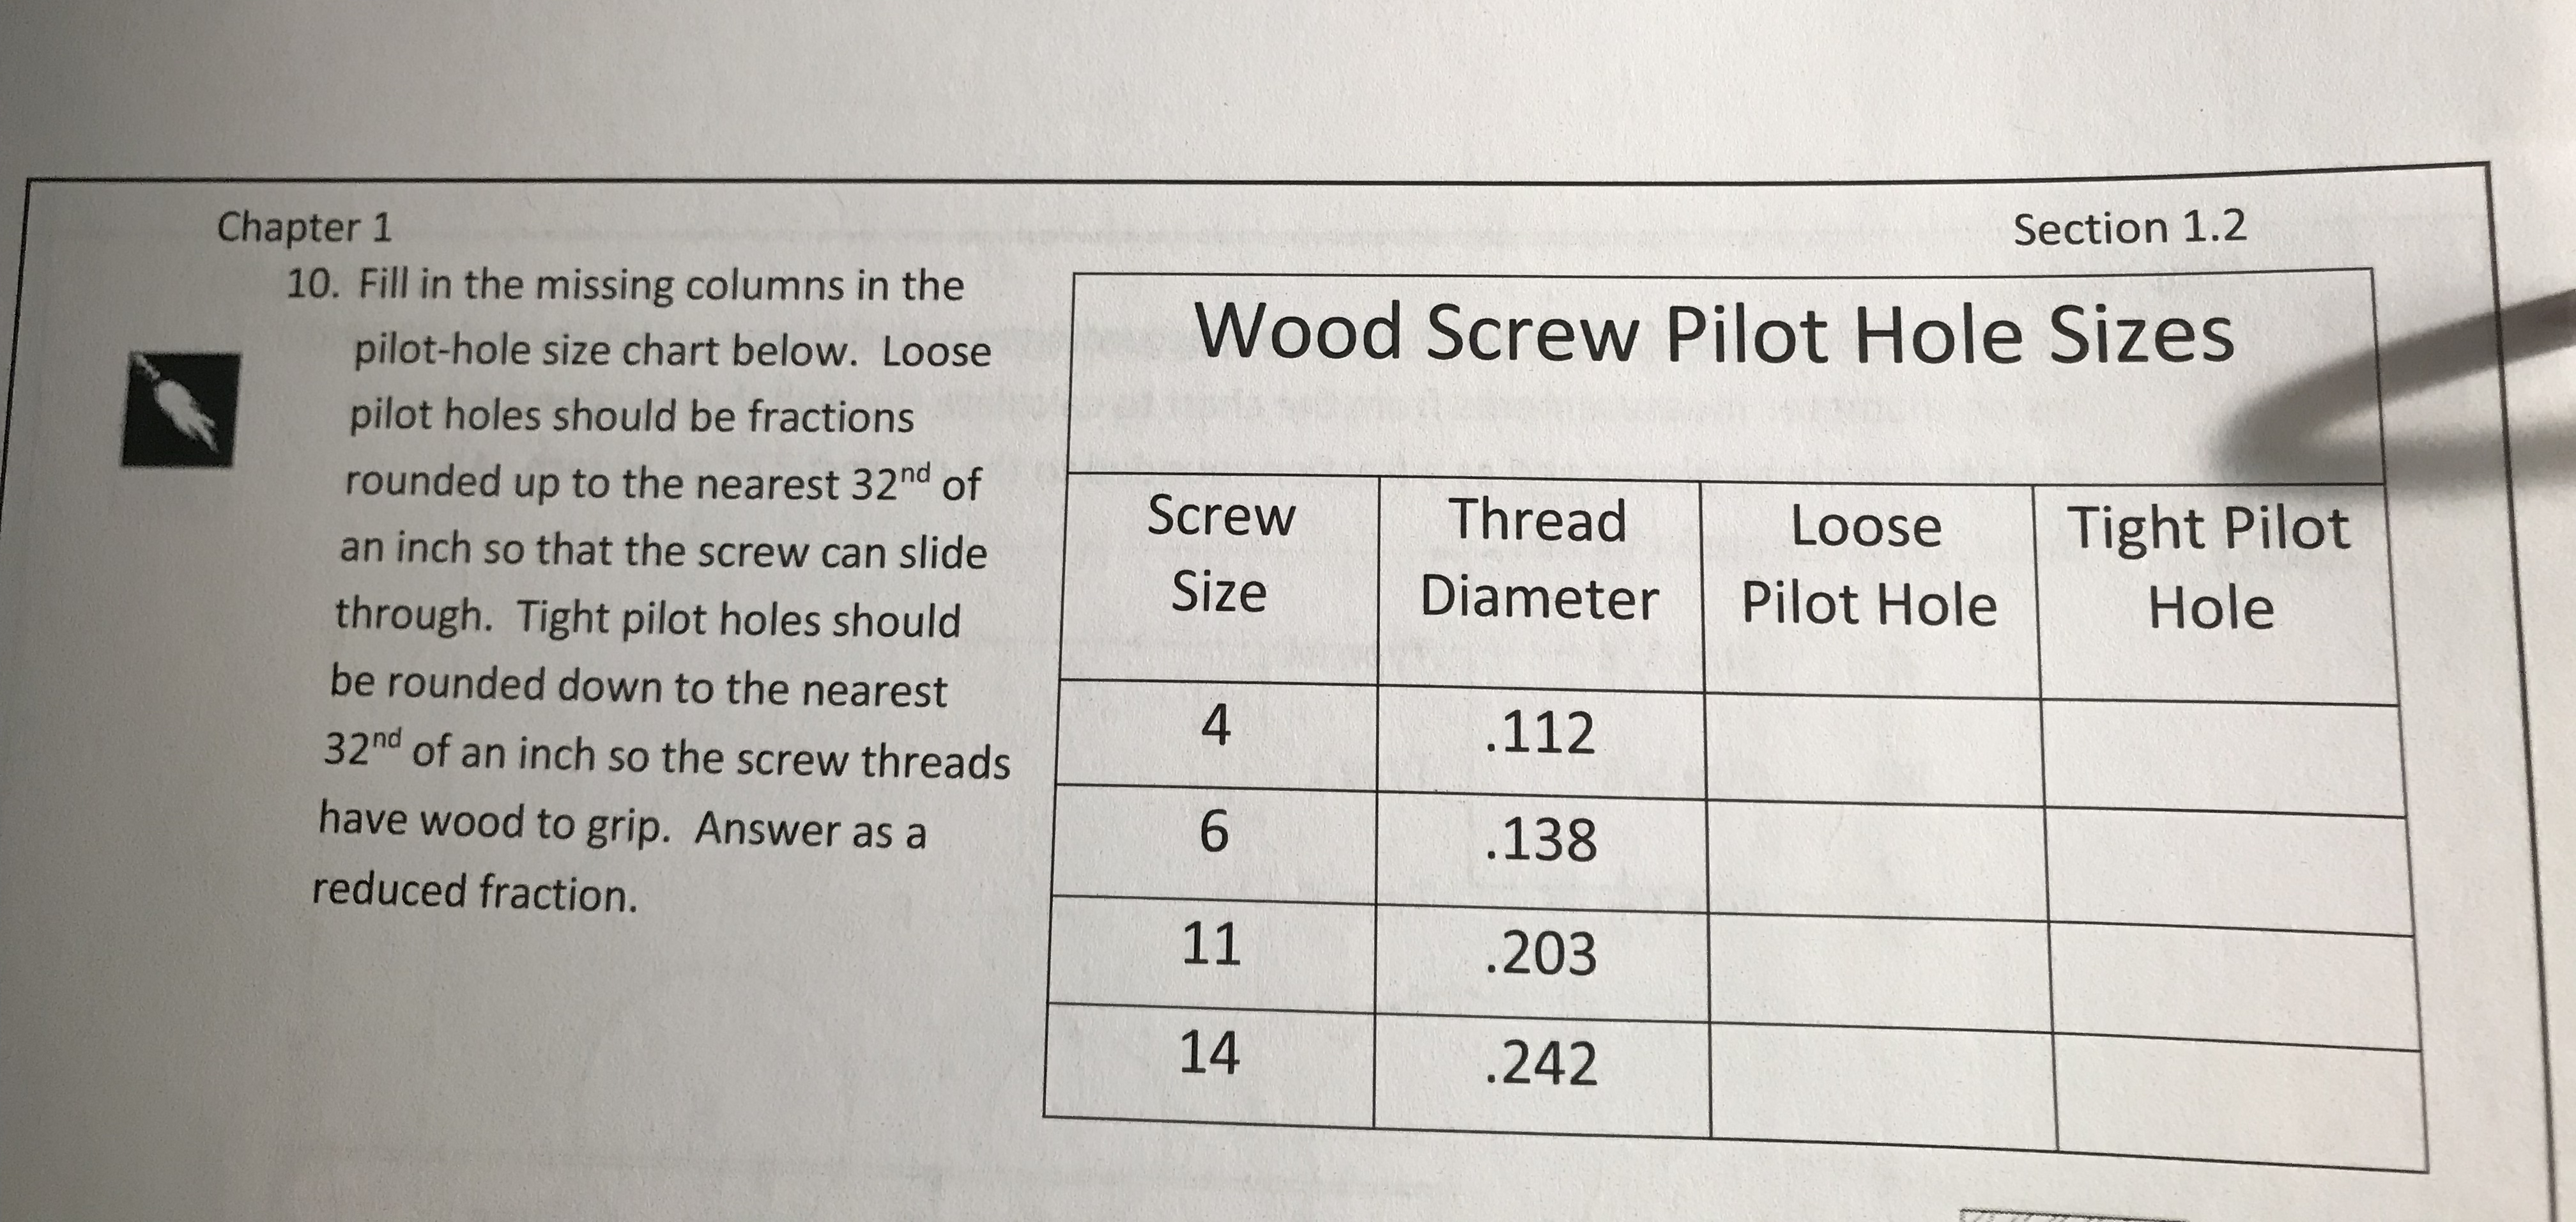 Section 1.2 Chapter 1 10. Fill in the missing columns in the ole size chart below. LooseWood Screw Pilot Hole Sizes pilot holes should be fractions rounded up to the nearest 32M ofhread L Screw Thread Size Diameter Pilot Hole Hole Loose Tight Pilot an inch so that the screw can slide through. Tight pilot holes should be rounded down to the nearest 32nd of an inch so the screw threads have wood to grip. Answer as a reduced fraction. 4 .112 138 .203 242 6 14